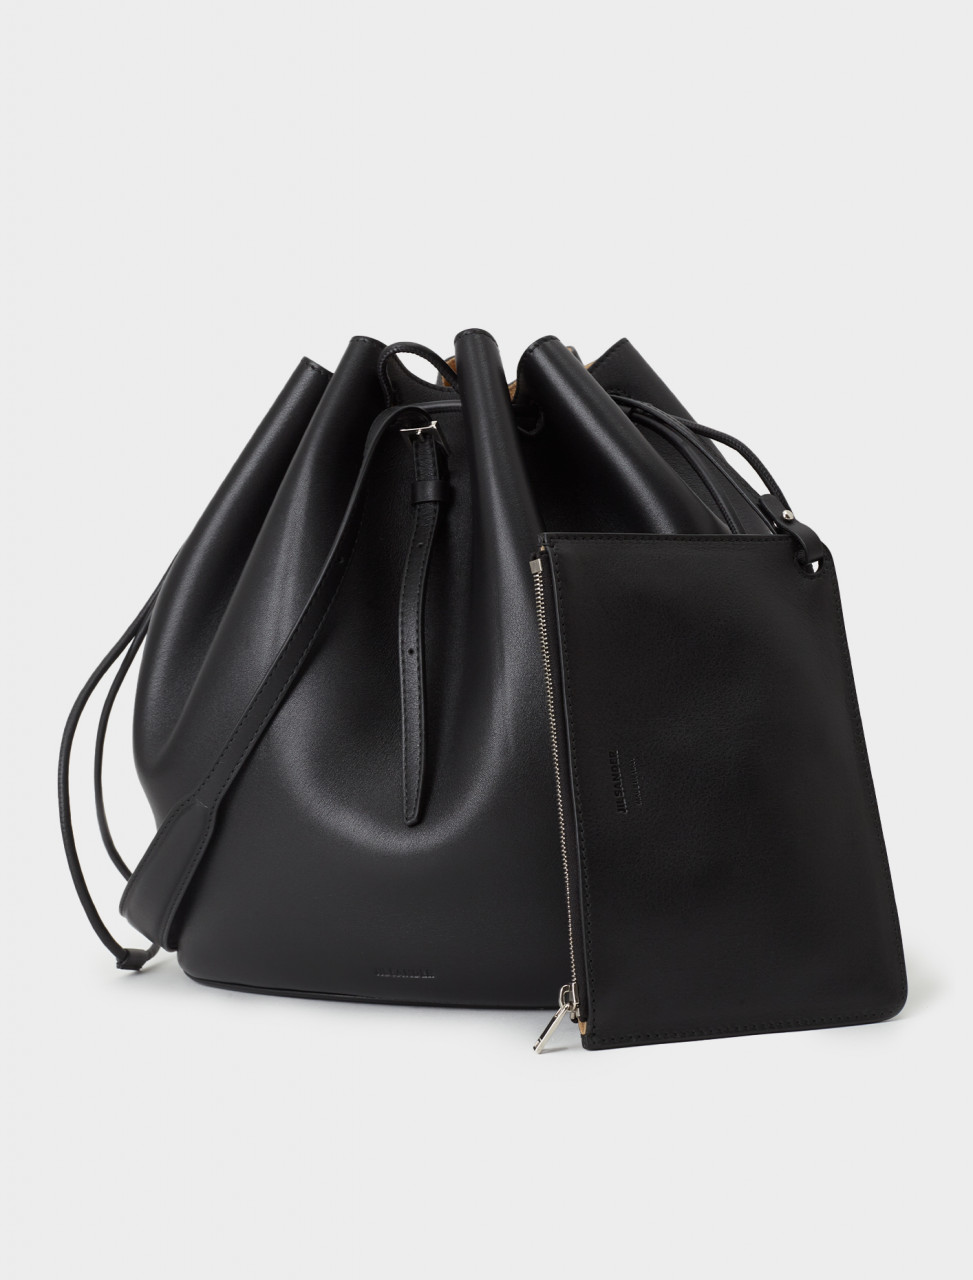 130-JSPR857431-WRB00076V-001 Jil Sander Holster Medium Bucket Bag in Black